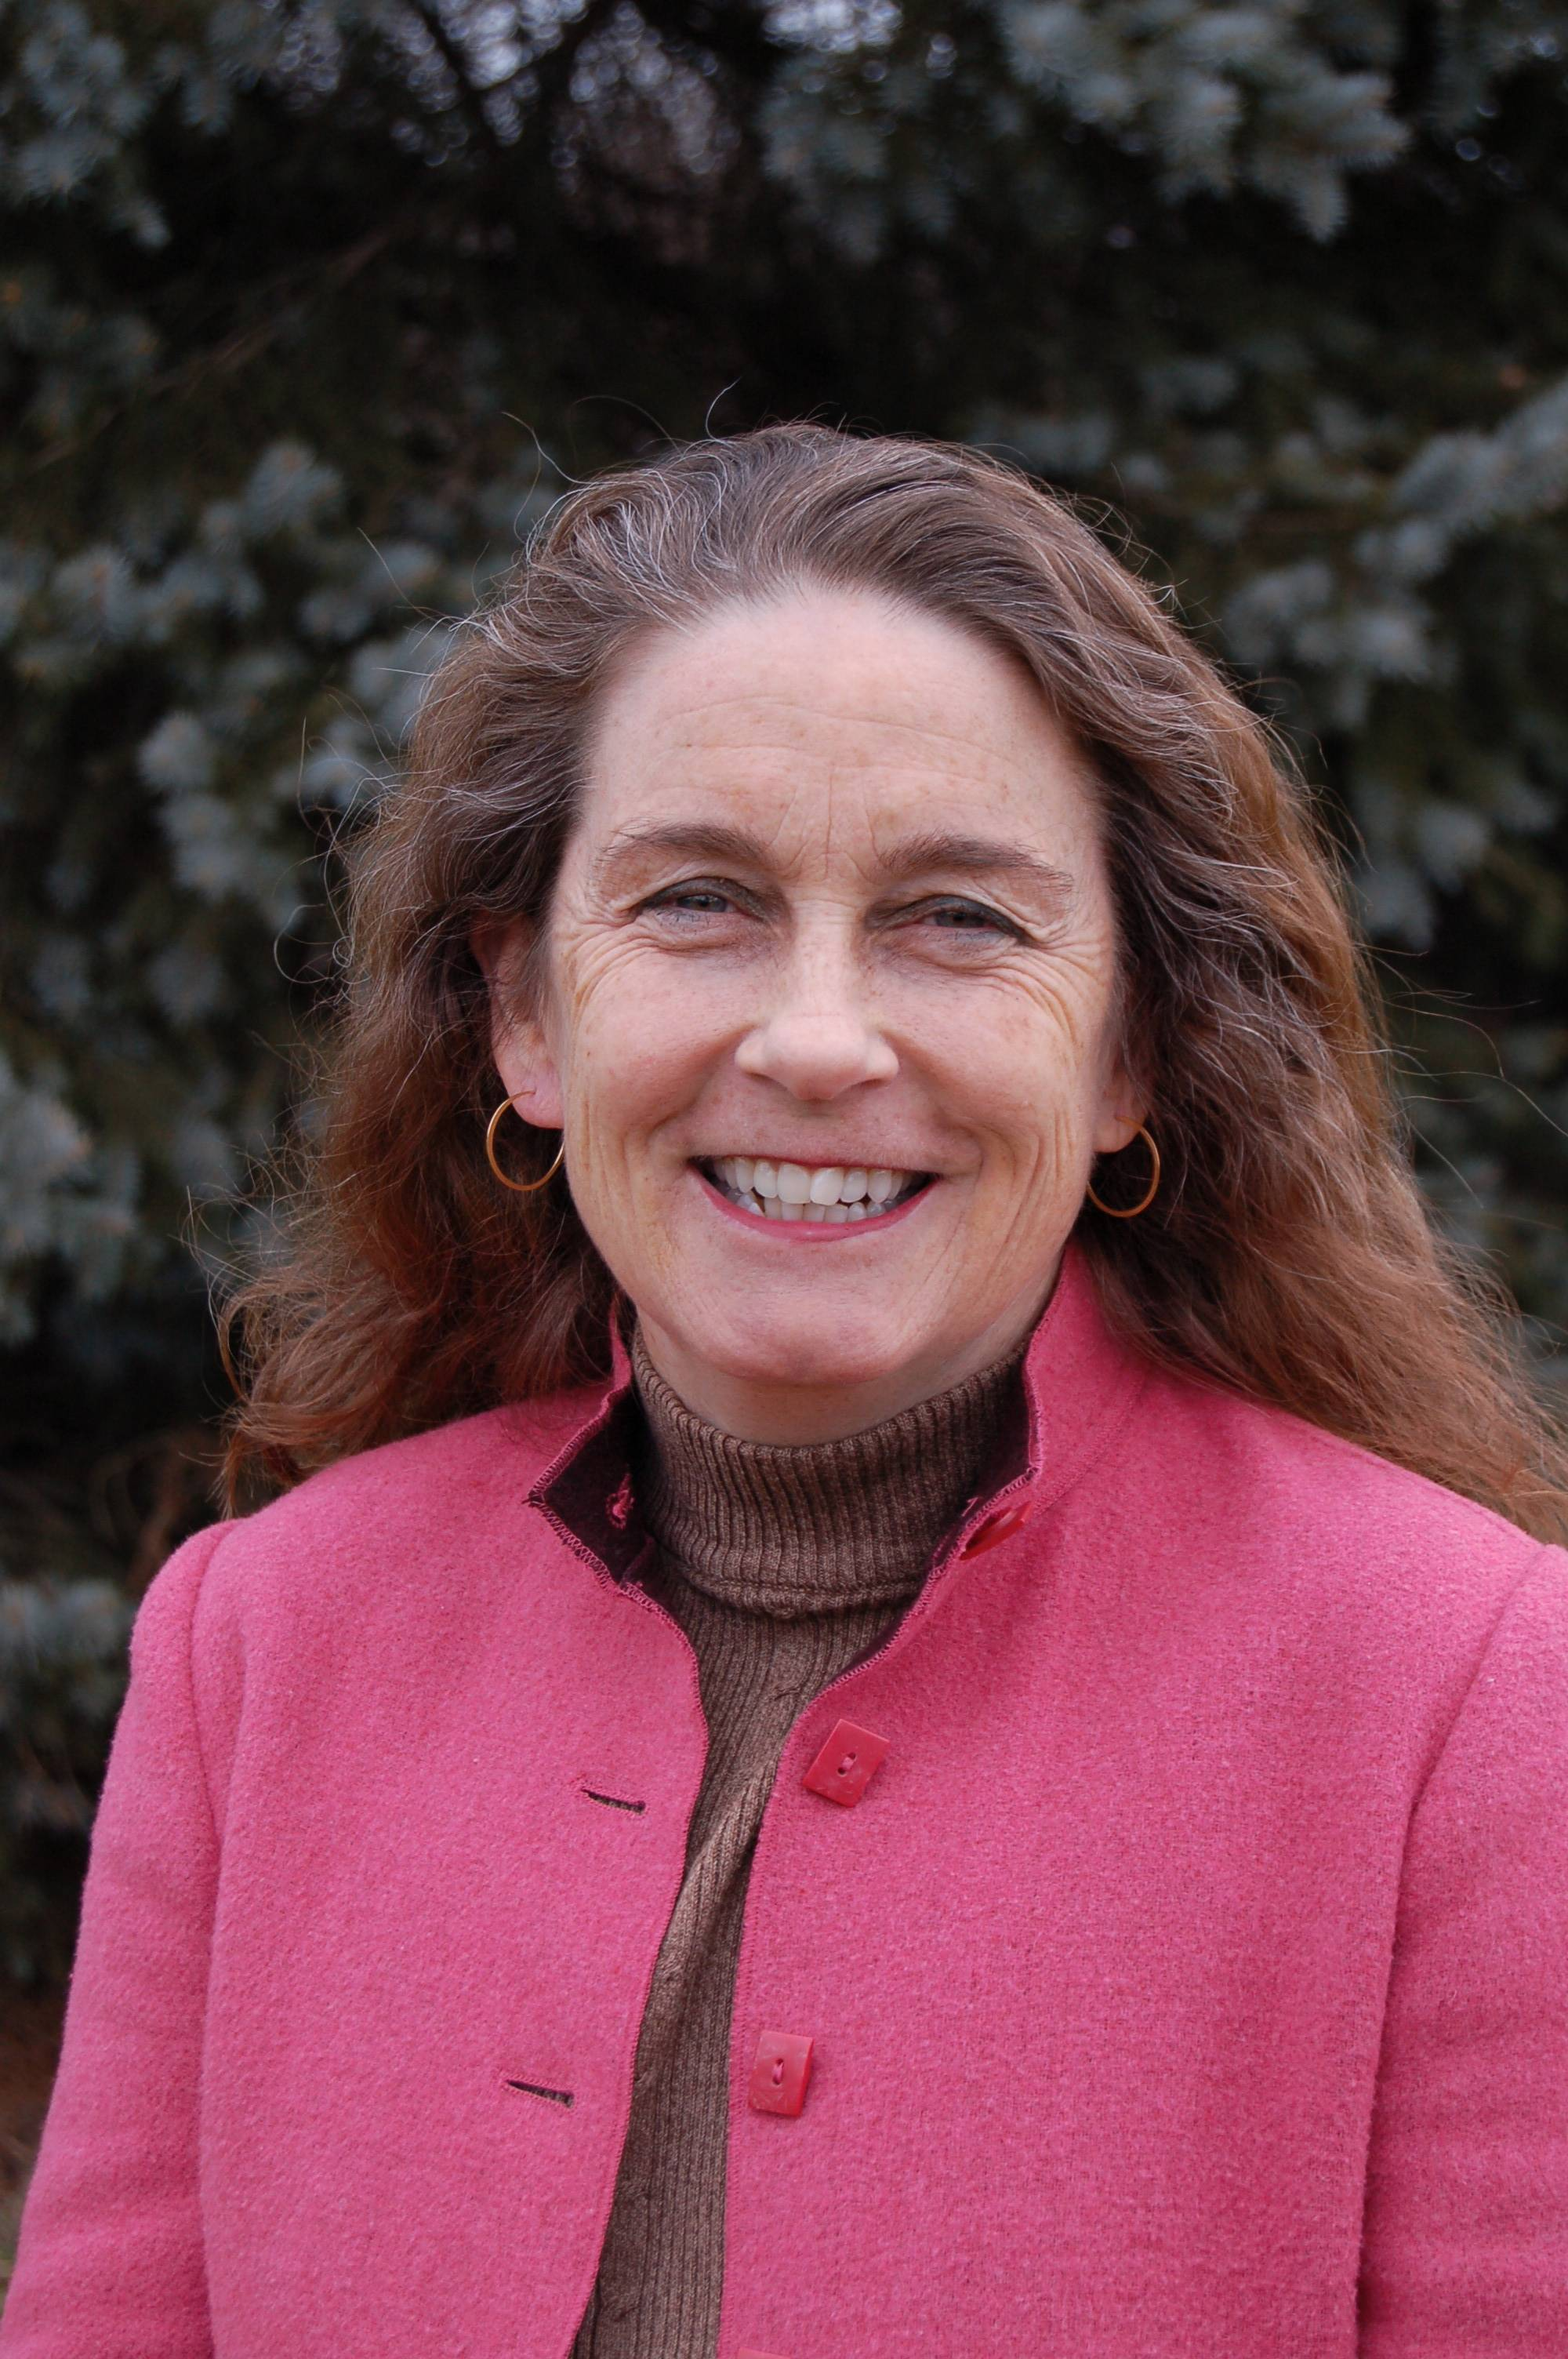 Ann Maine, running for Lake County board District 21